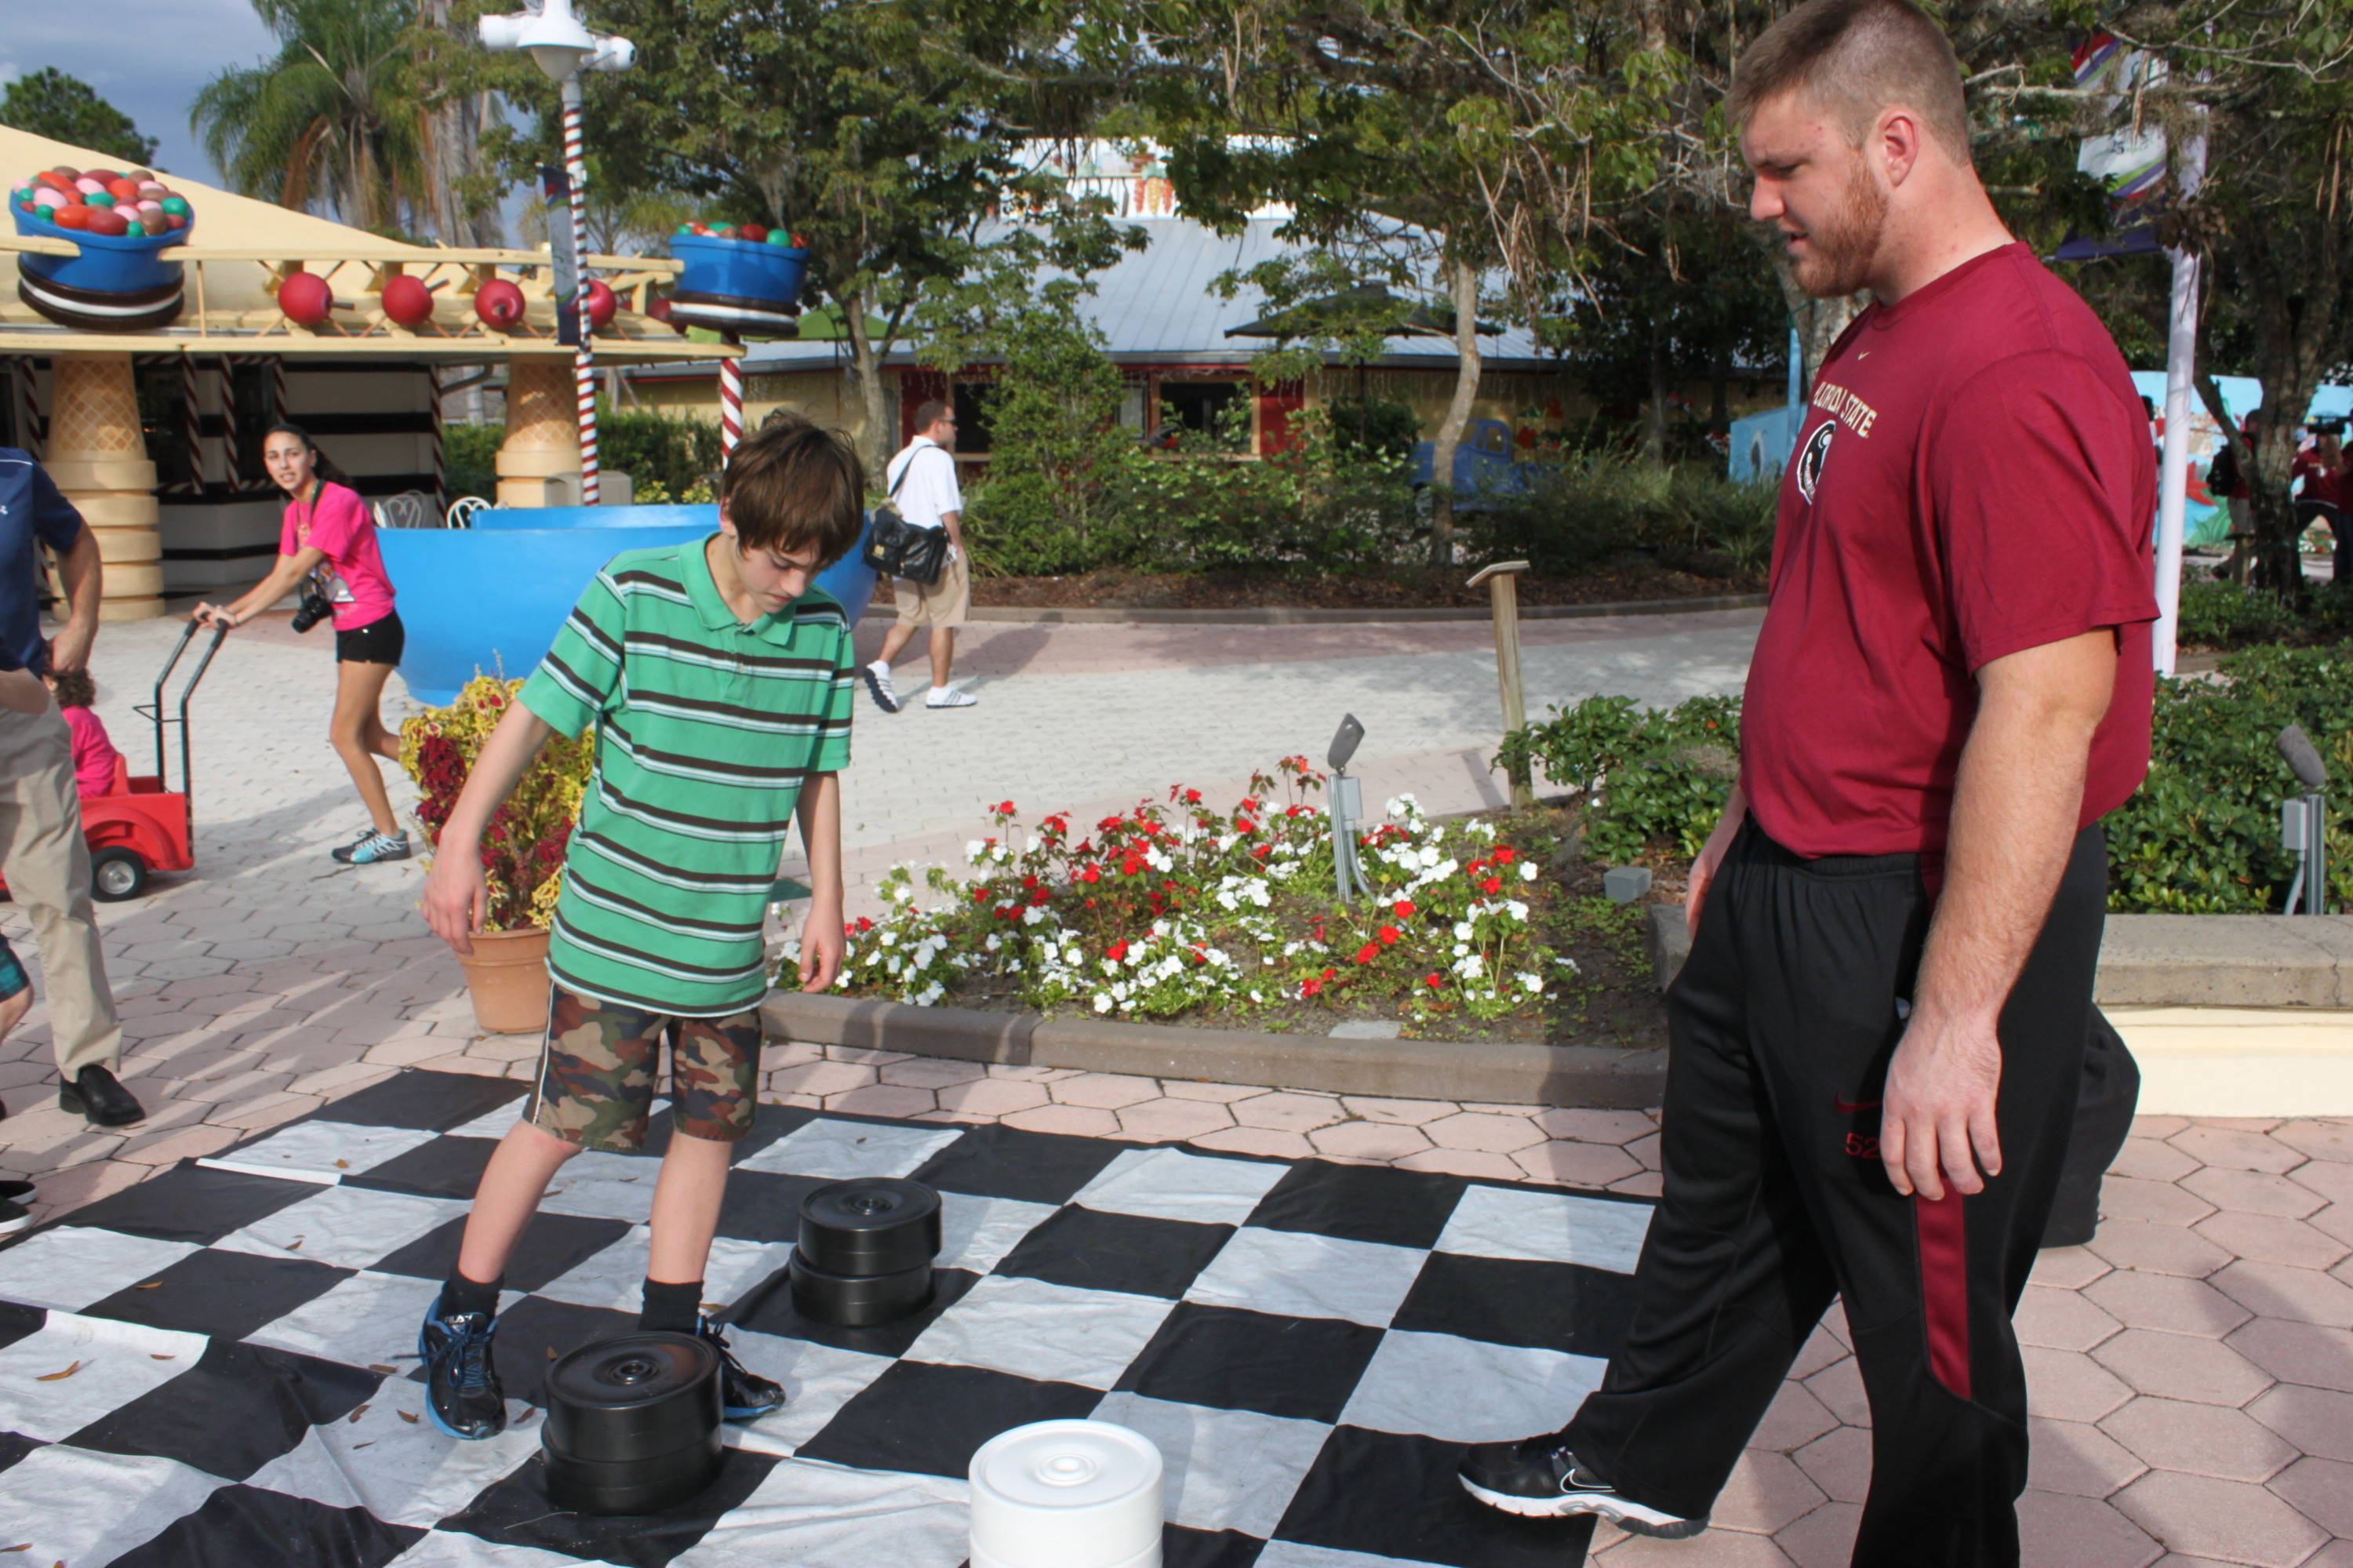 Bryan Stork provided a little advice in an over-sized game of checkers.